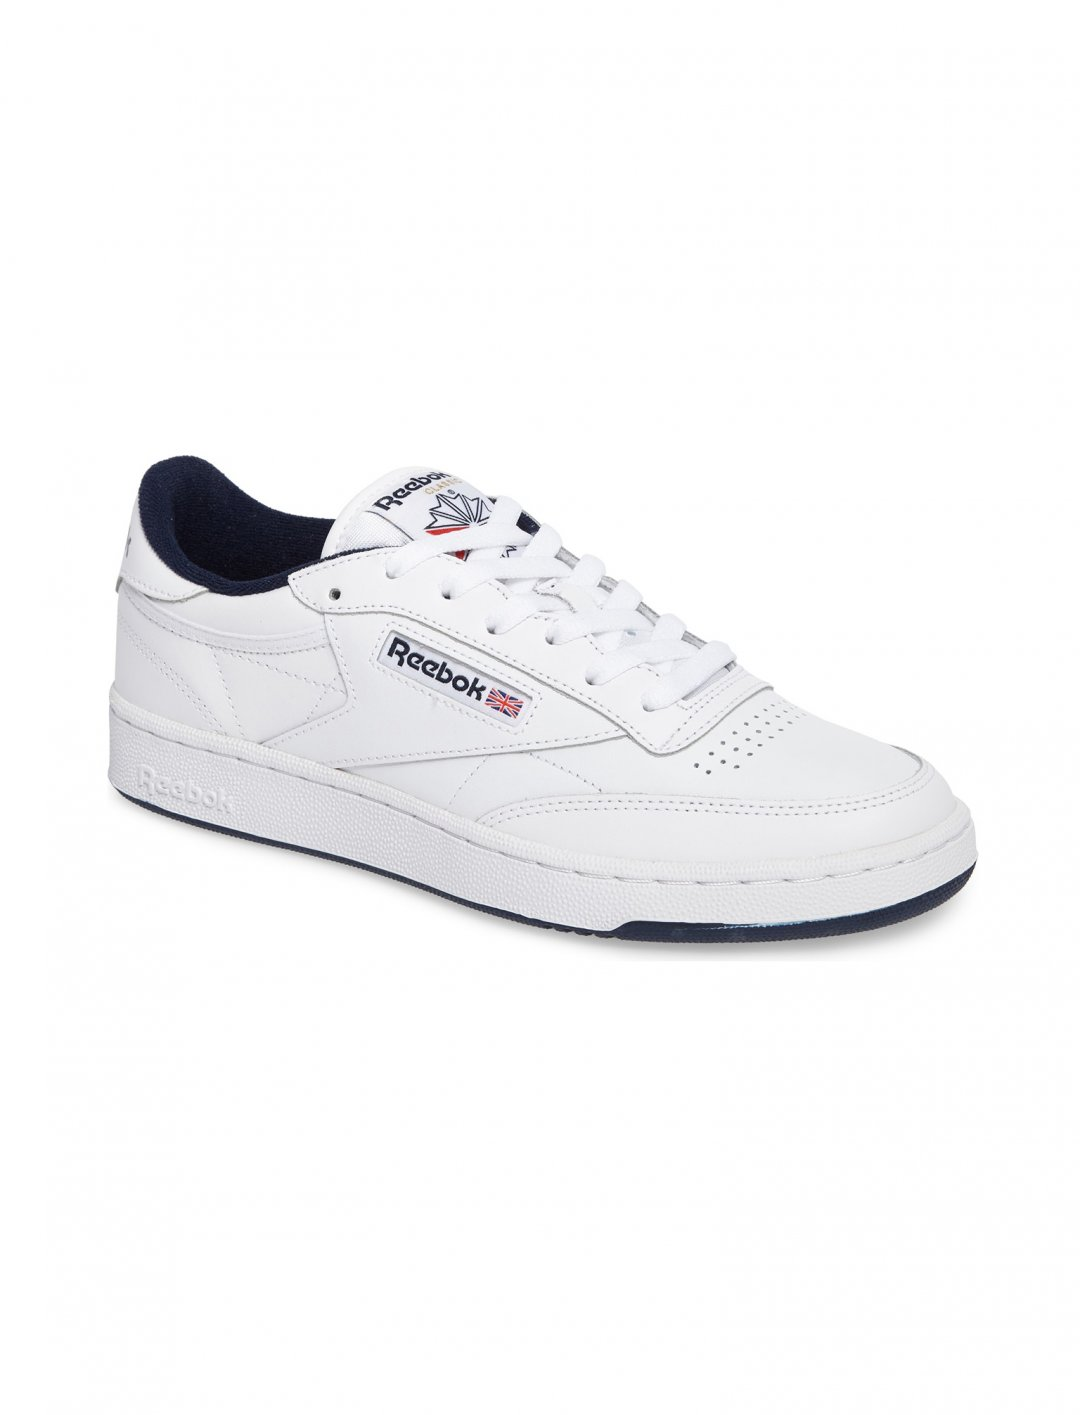 "Reebok Club C 85 Sneaker {""id"":5,""product_section_id"":1,""name"":""Clothing"",""order"":5} Reebok"